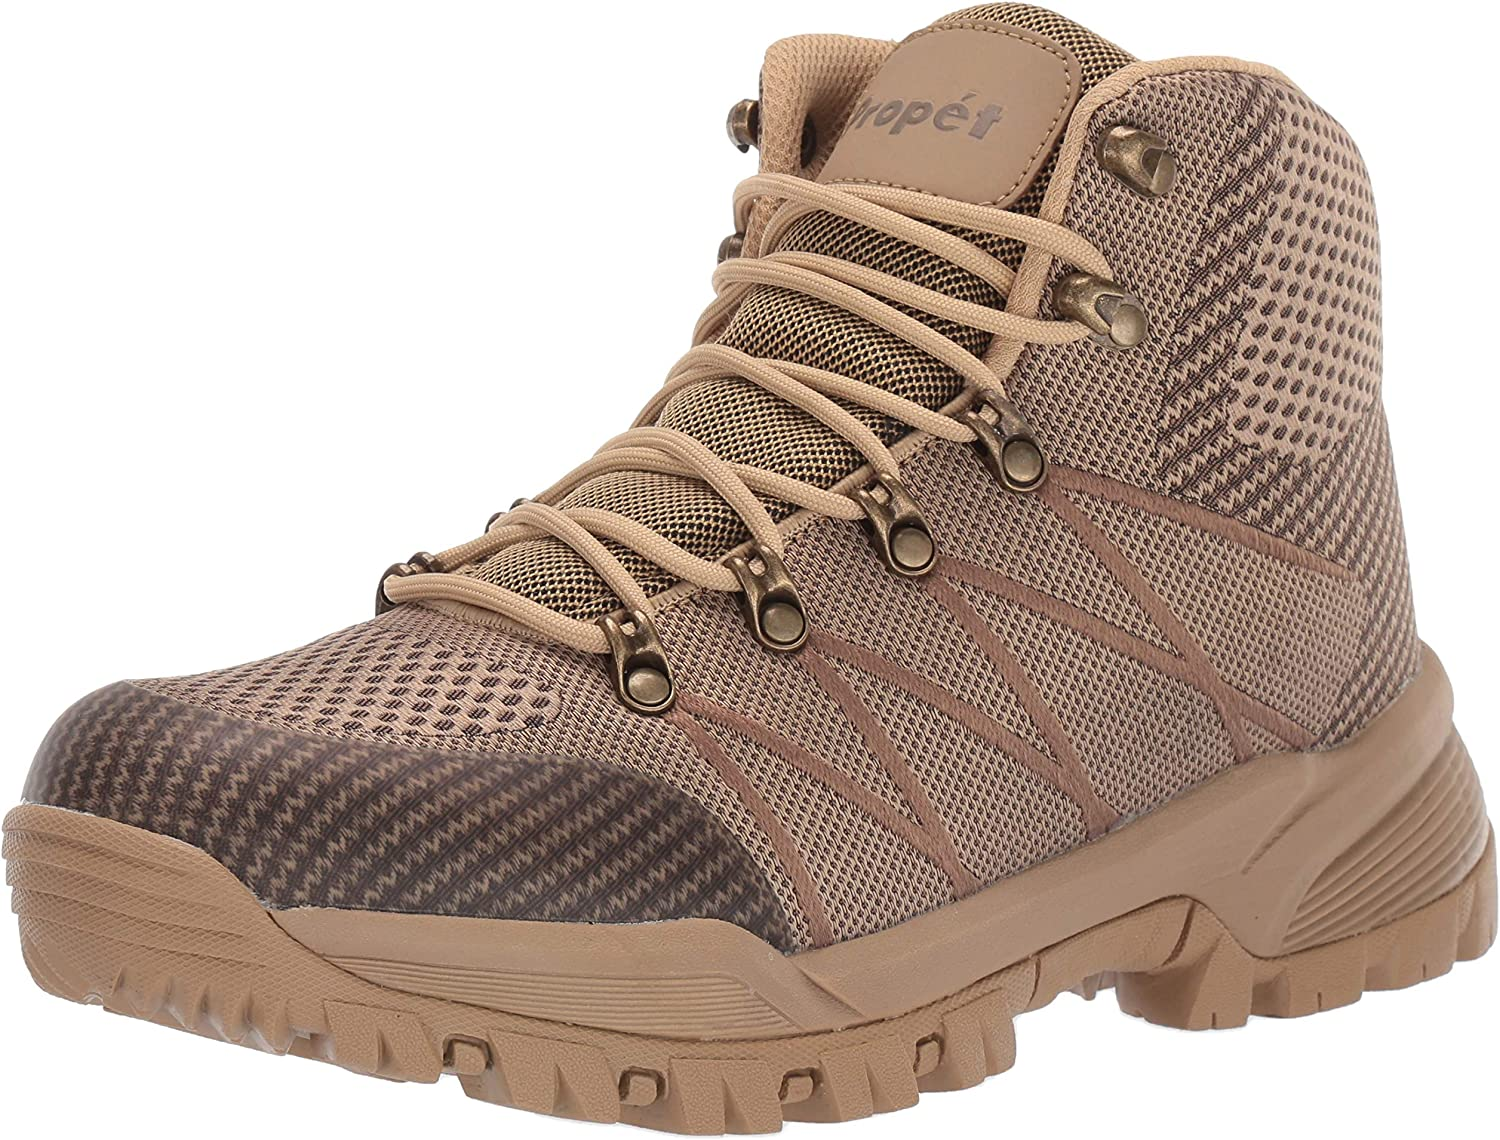 Propet Men's Traverse Hiking We OFFer Financial sales sale at cheap prices Boot X-Wide Brown 15 Sand